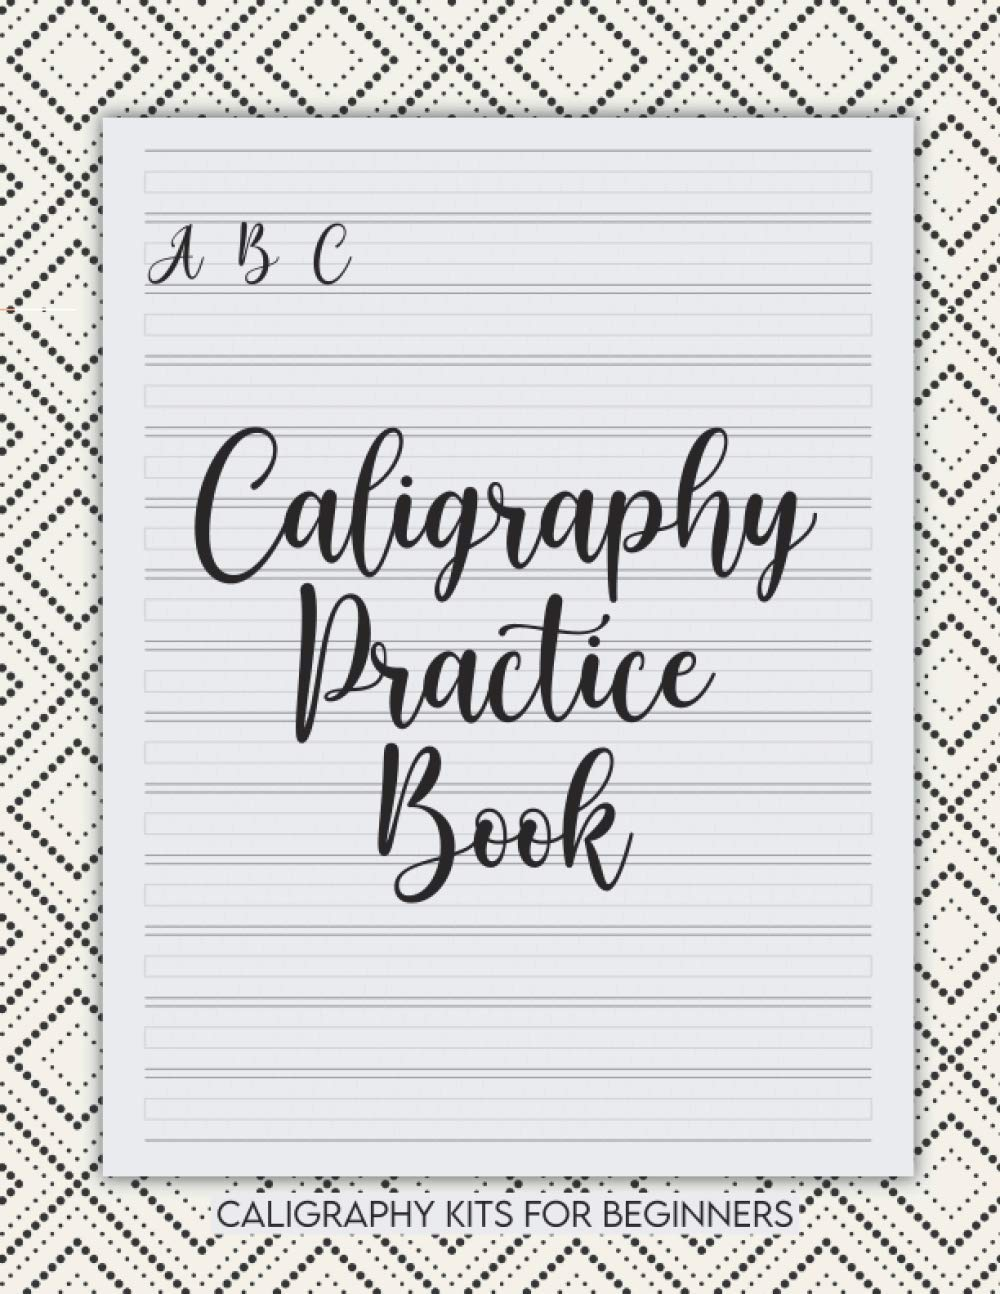 Caligraphy Practice Book Caligraphy Kits For Beginners: Hand Lettering Workbook / Caligraphy Book / Calligraphy Books For Beginners Kit / Caligraphy Paper / Calligraphy Practice Sheets